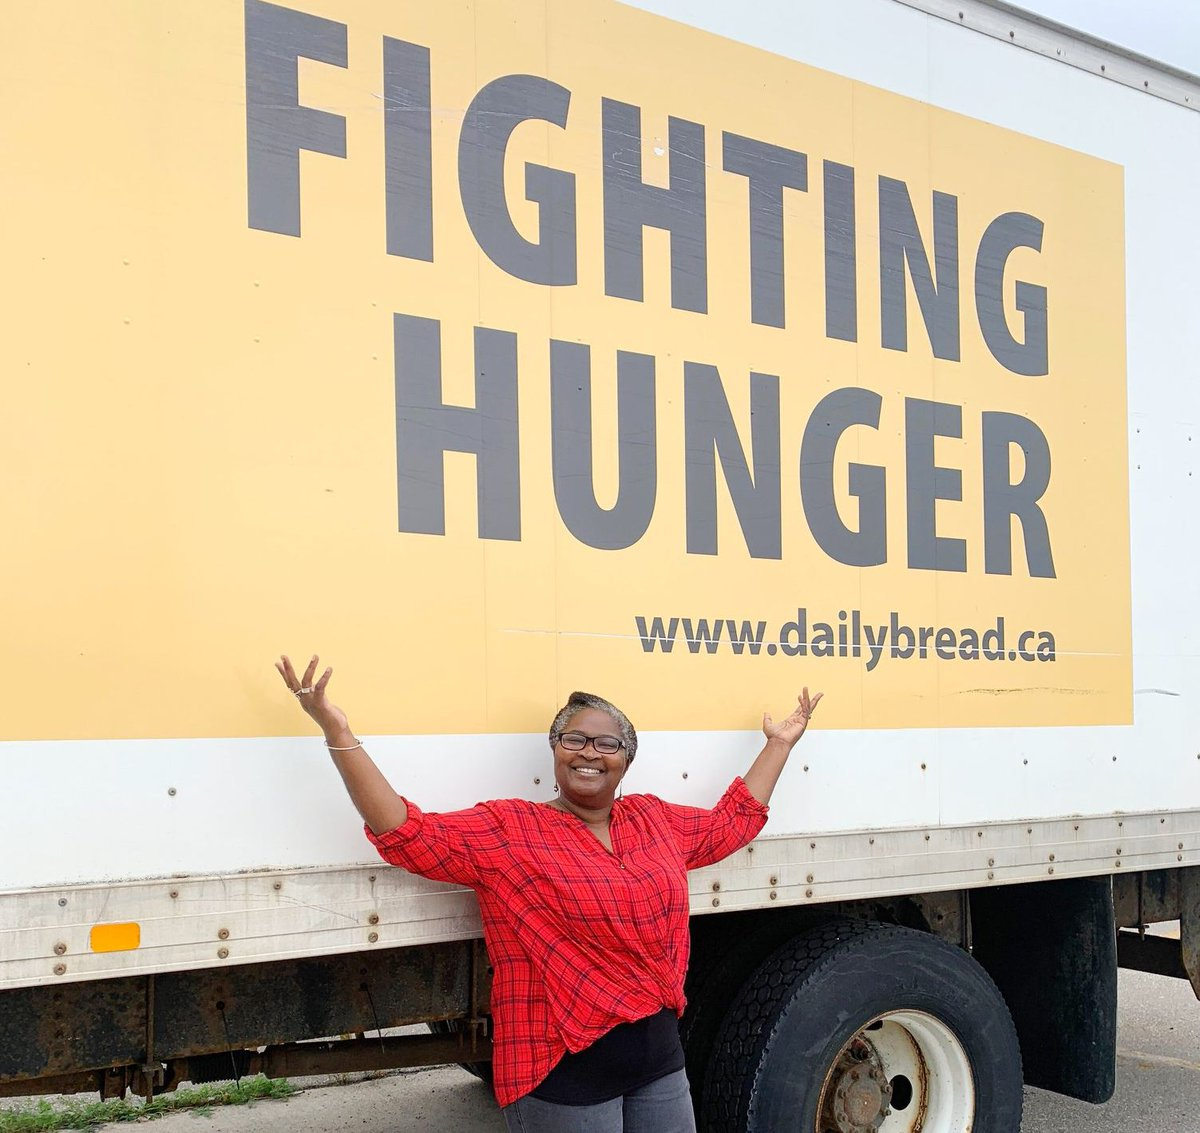 United to support Ontario food banks, communities during COVID19 crisis